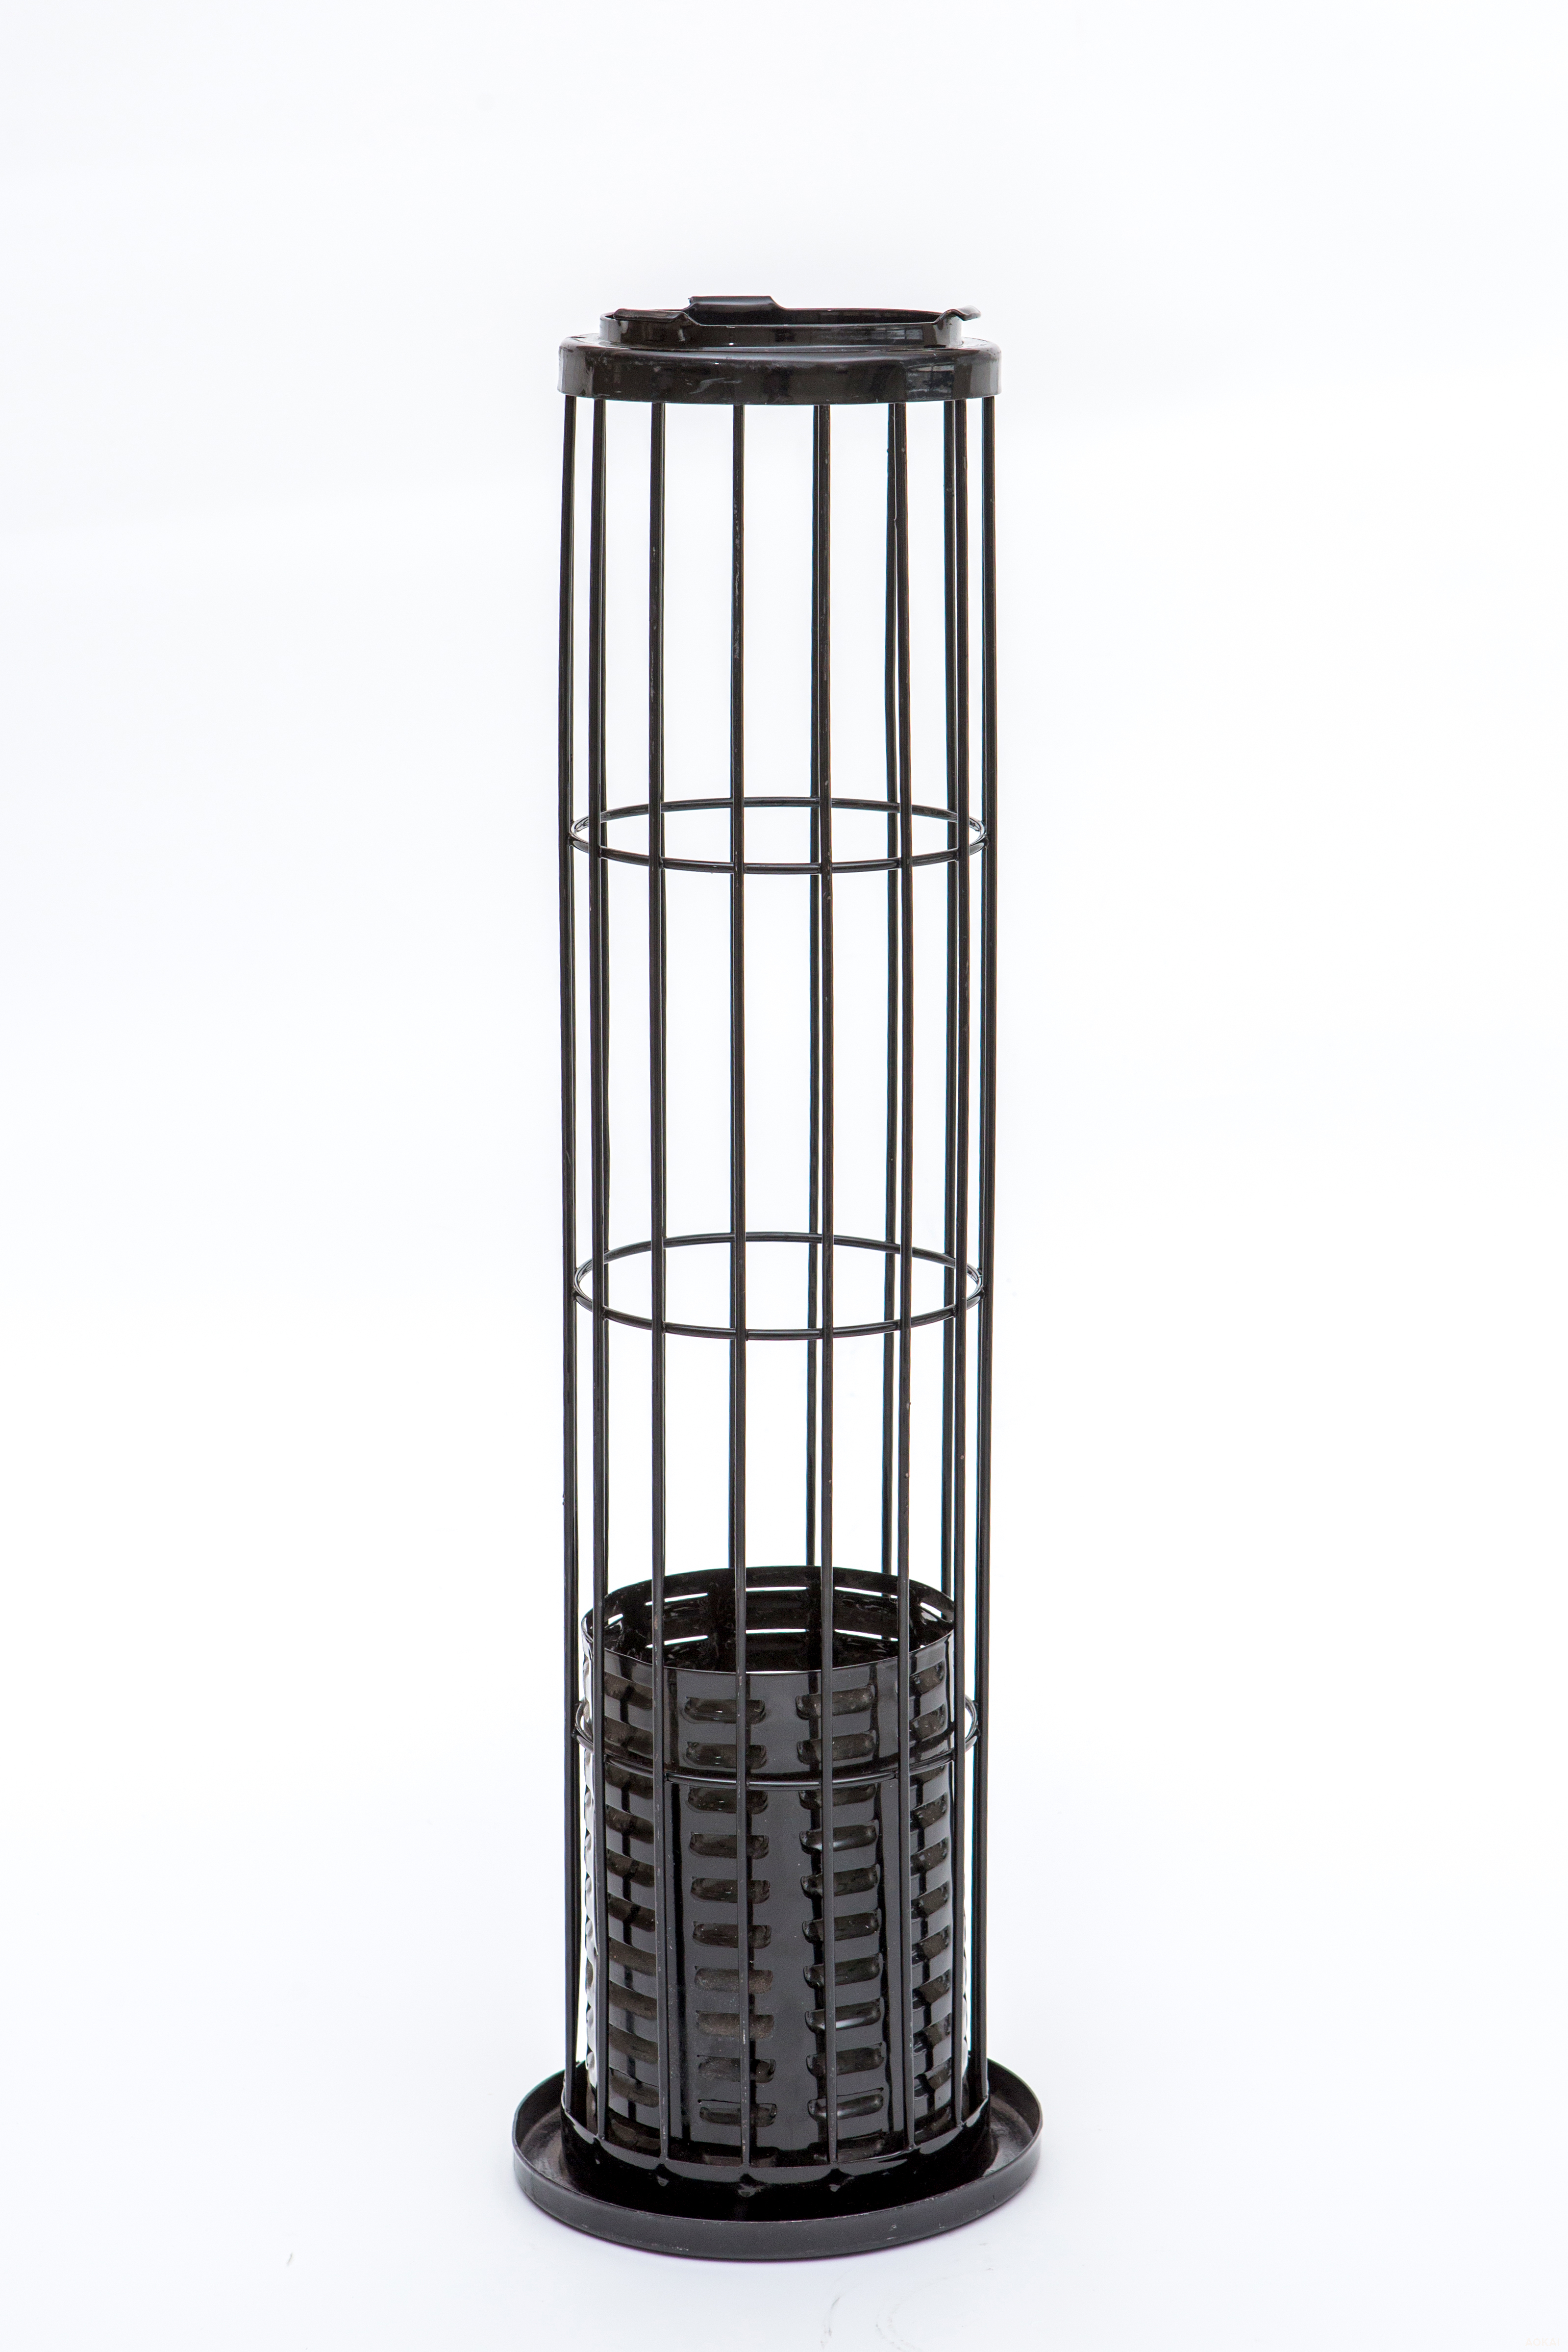 Stainless Steel Dust Collectors Filter Bag Cage